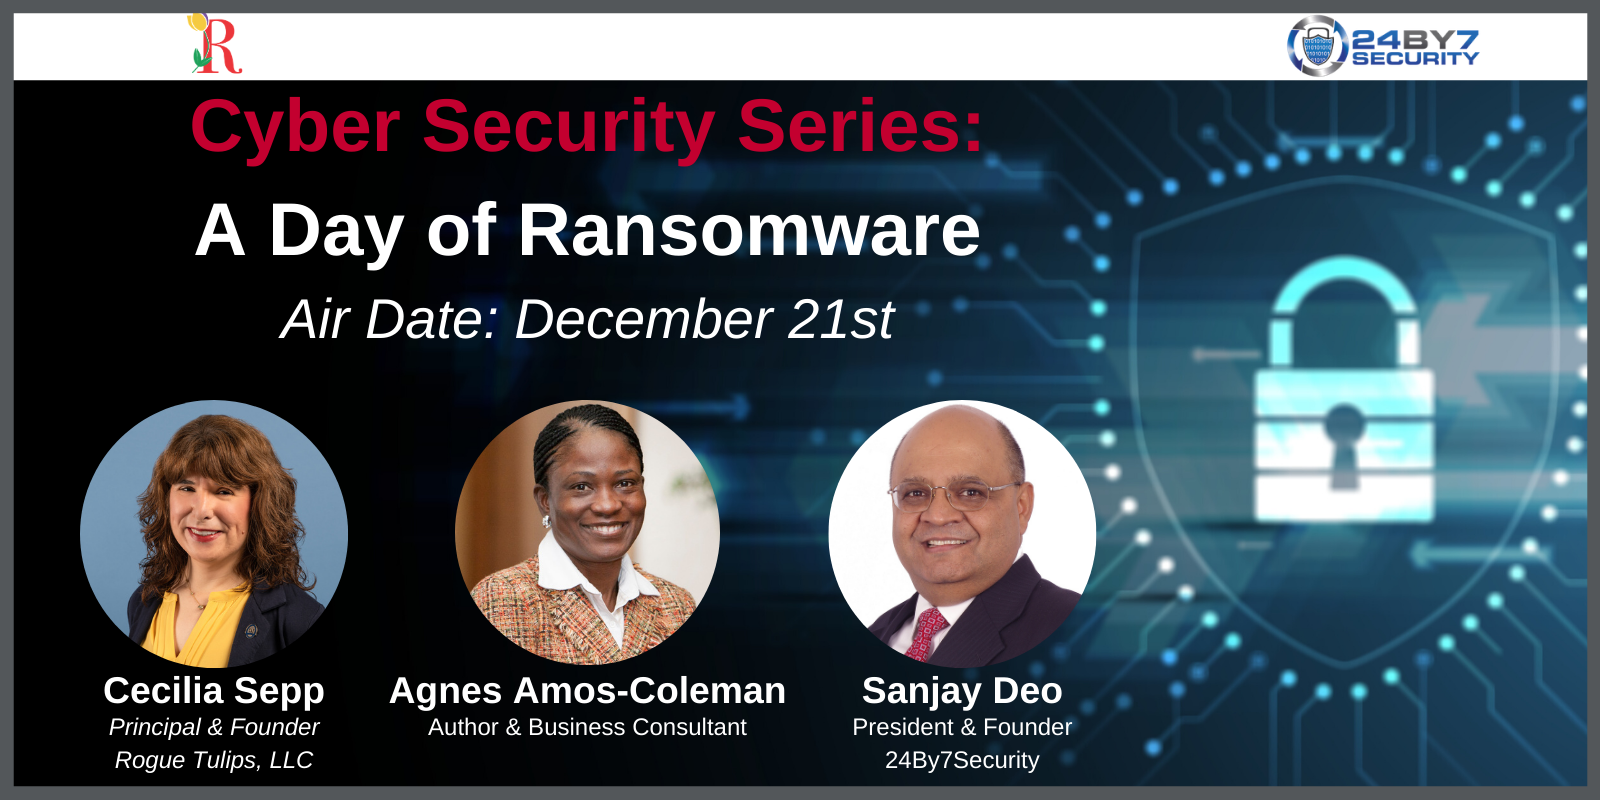 Cybersecurity Series Ransomware